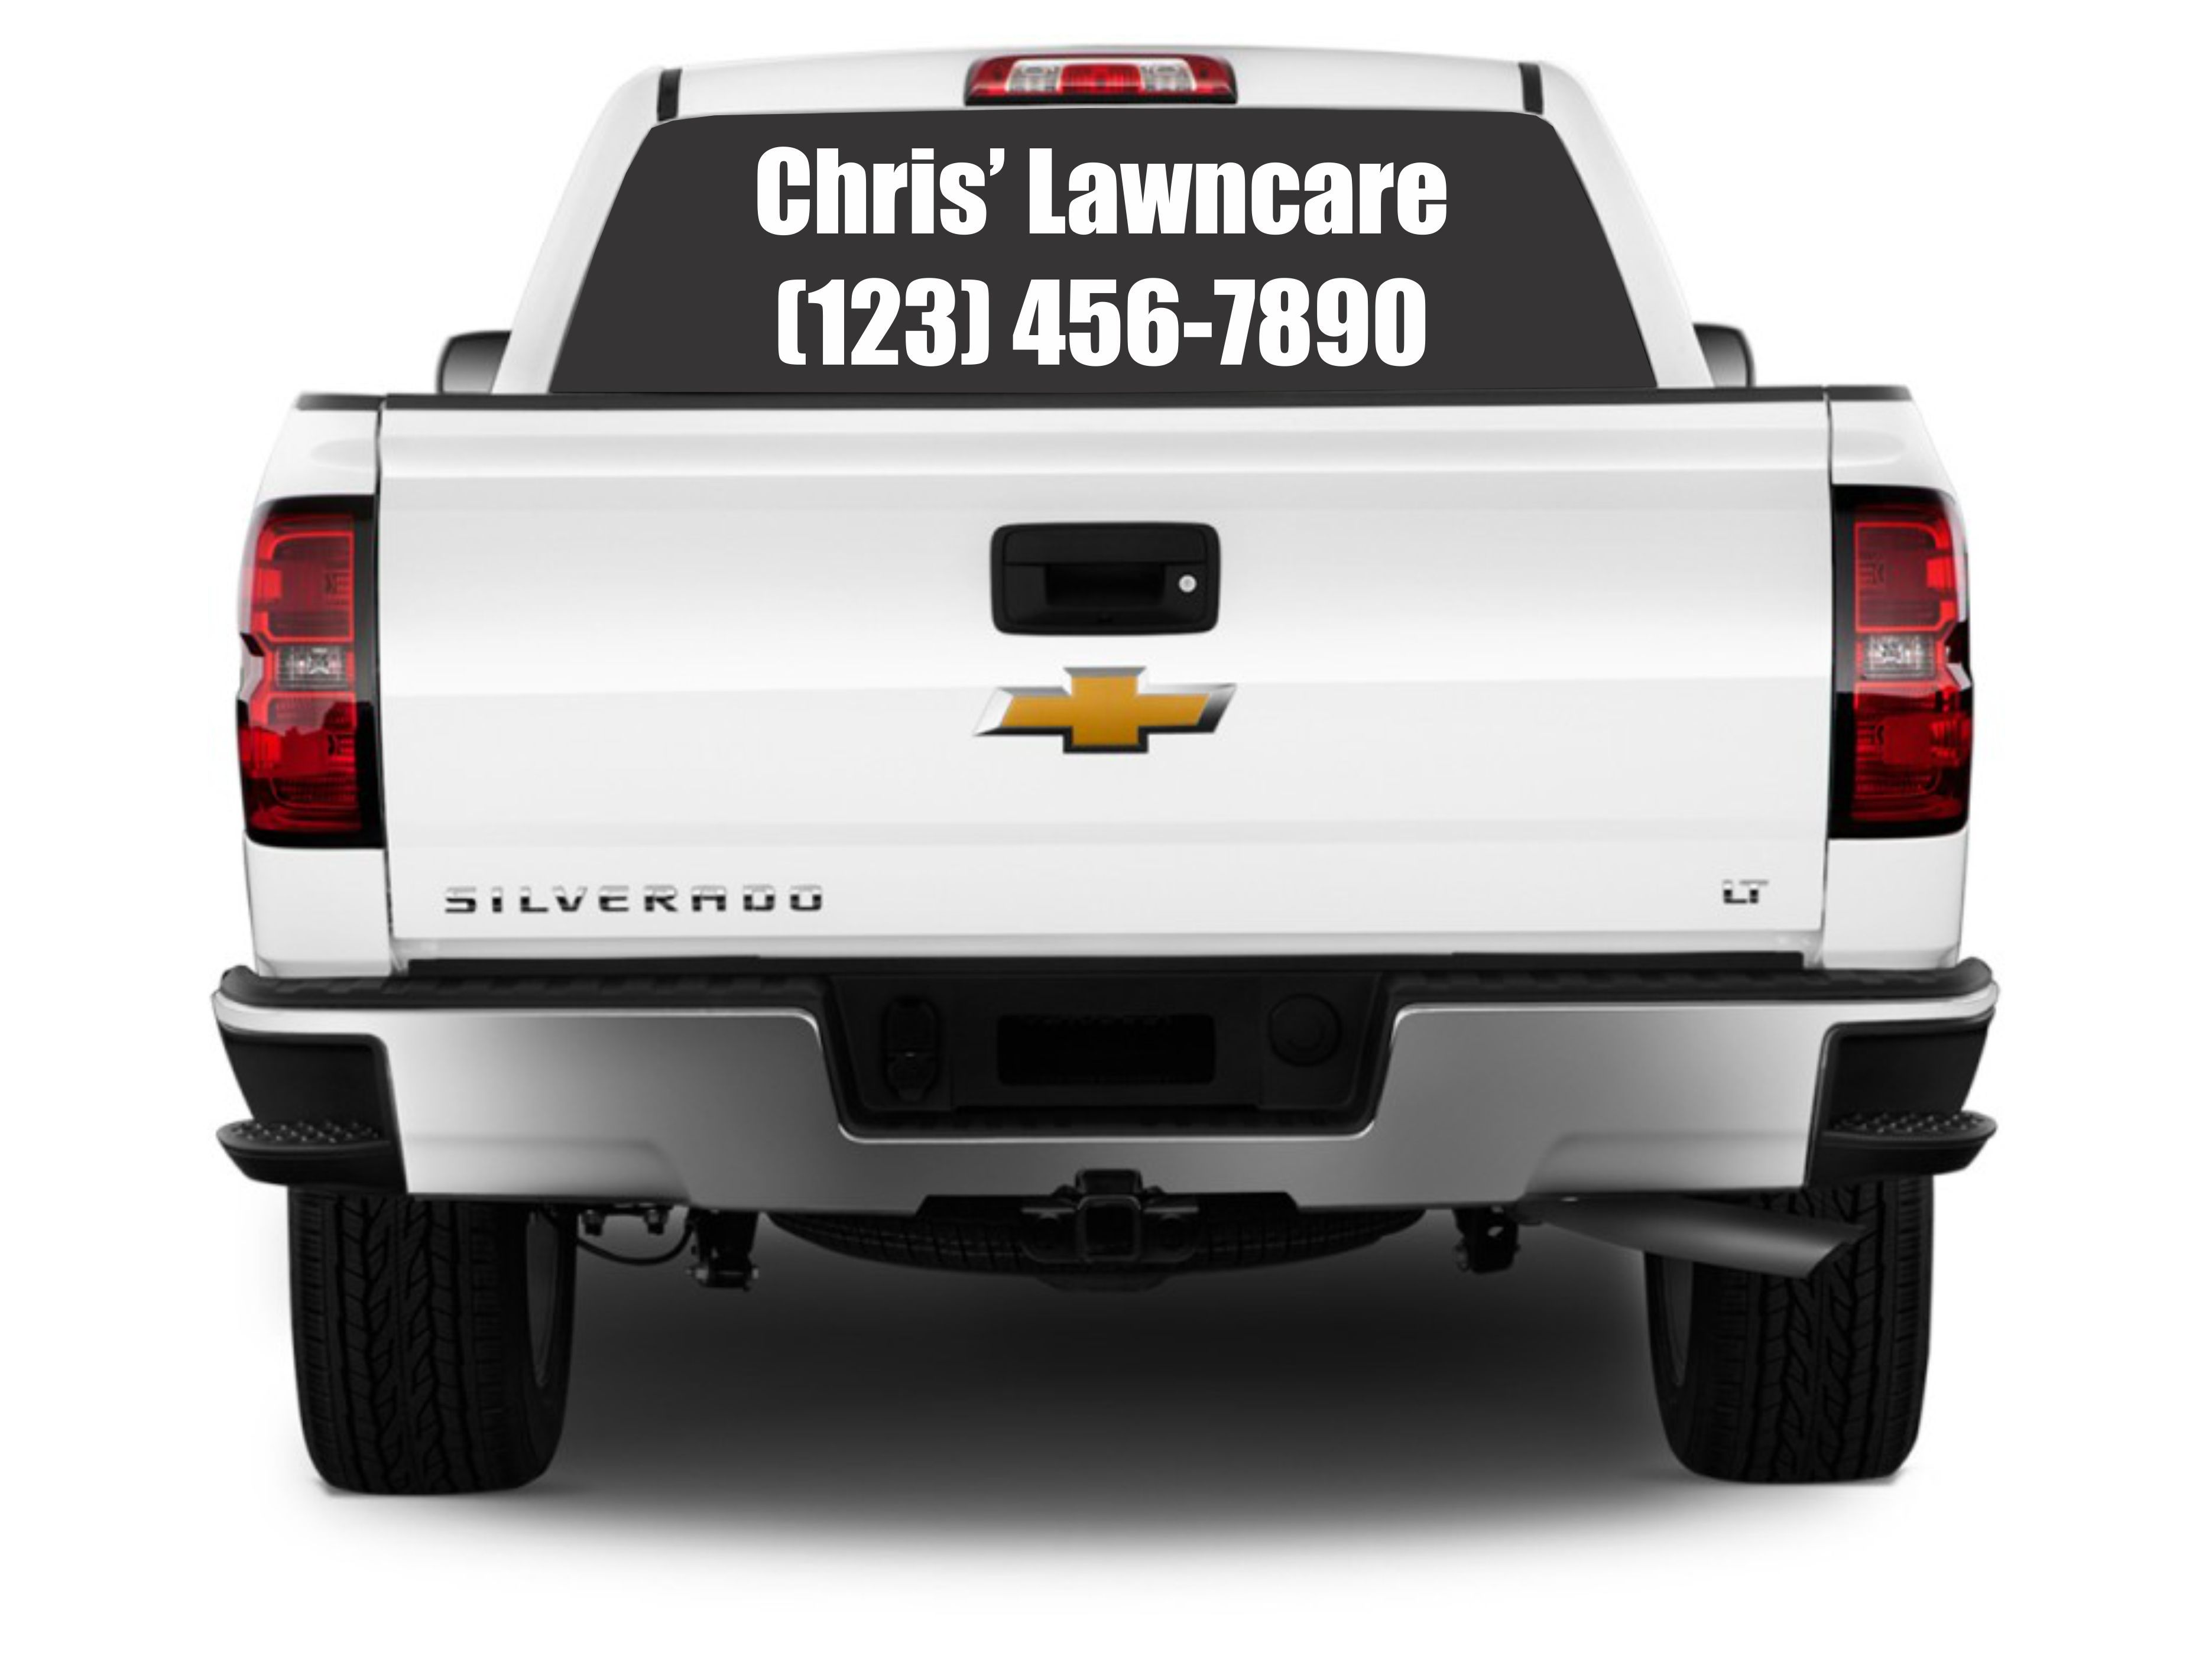 Thanks Chris Lawncare For Your Vinyl Decal Backglass Order Advertise Your Business On Your Car Truck Or Any Vehicle With Vinyl Le Silverado 1500 For Sale Custom Vinyl Lettering 2017 Chevrolet Silverado 1500